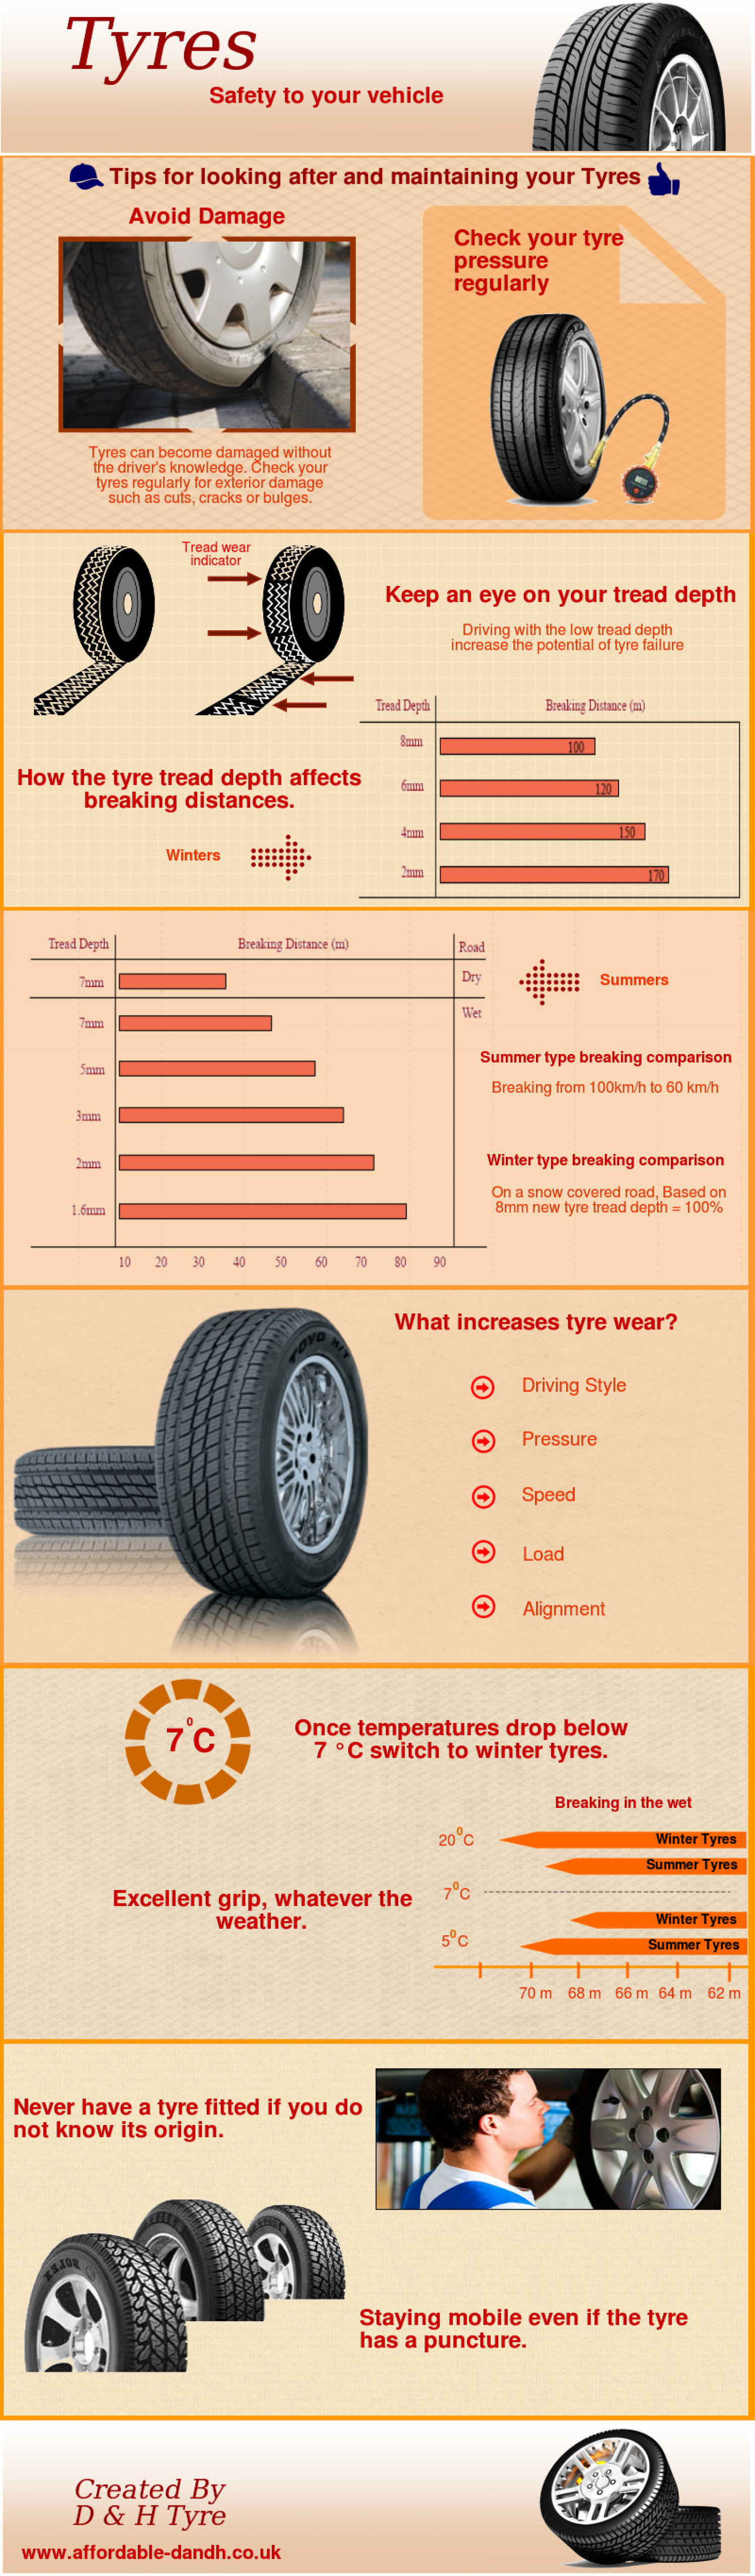 Tyres - Safety to your vehicle Infographic